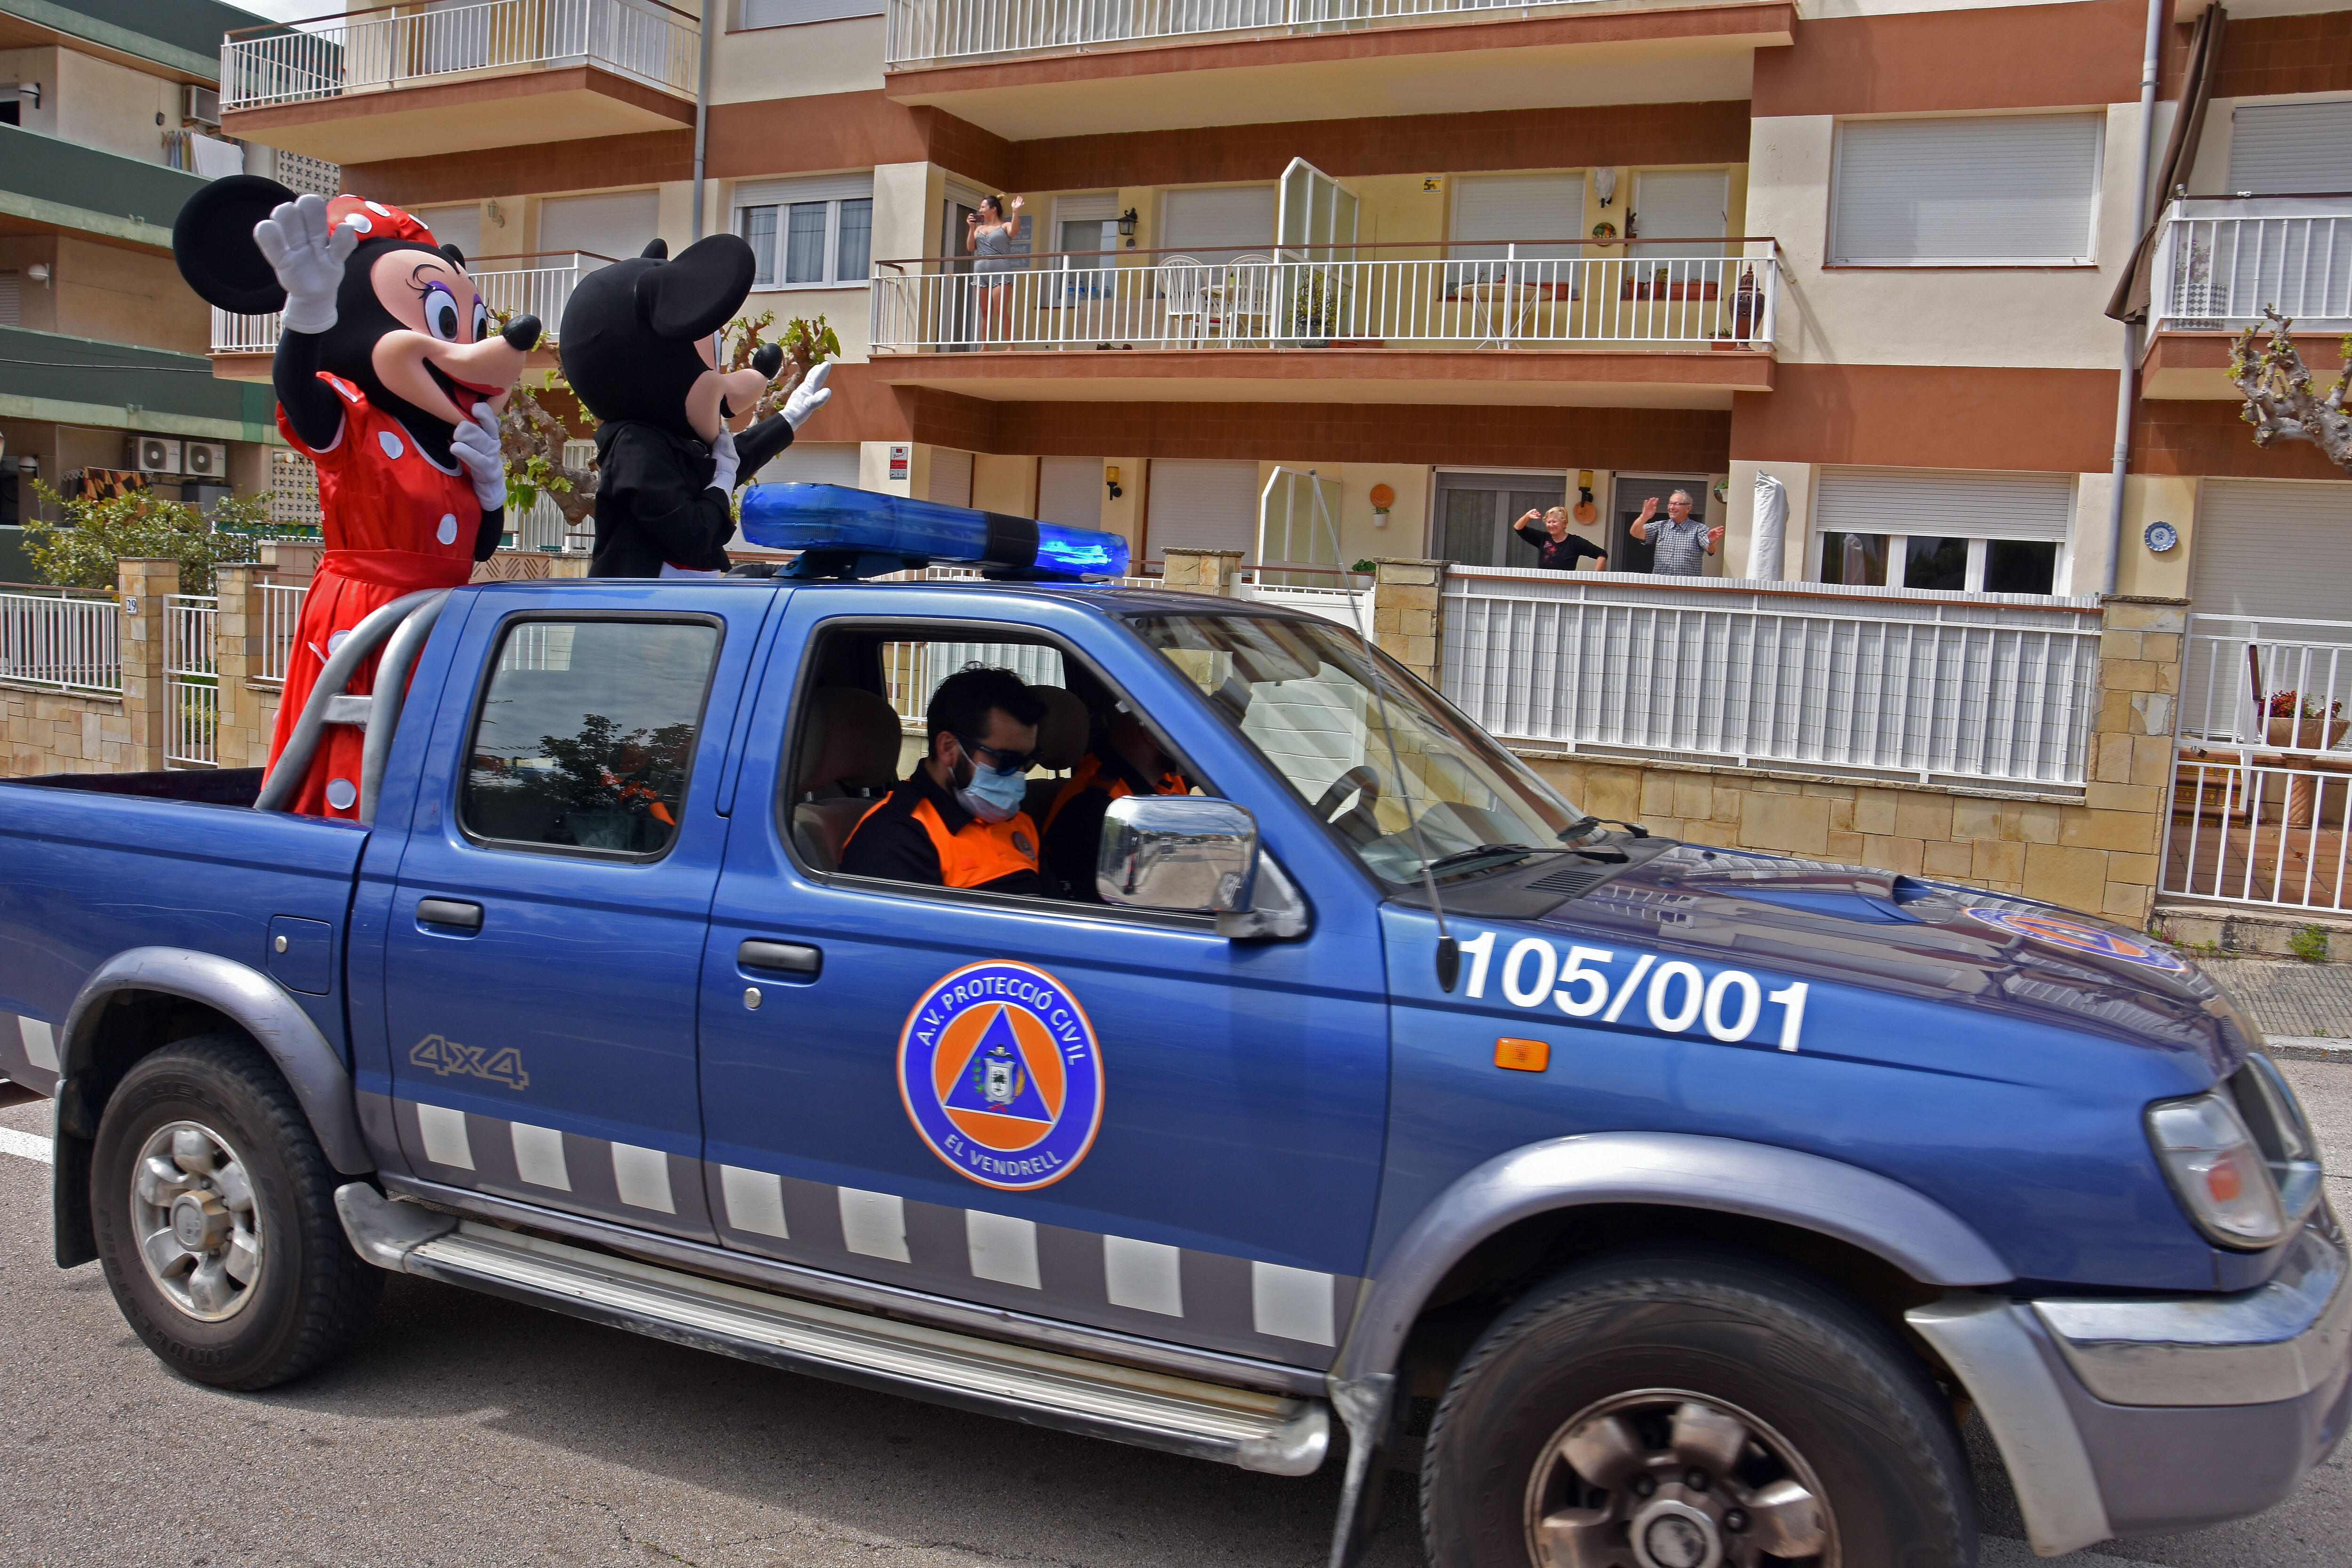 Mickey and Minnie bring cheer in Spain